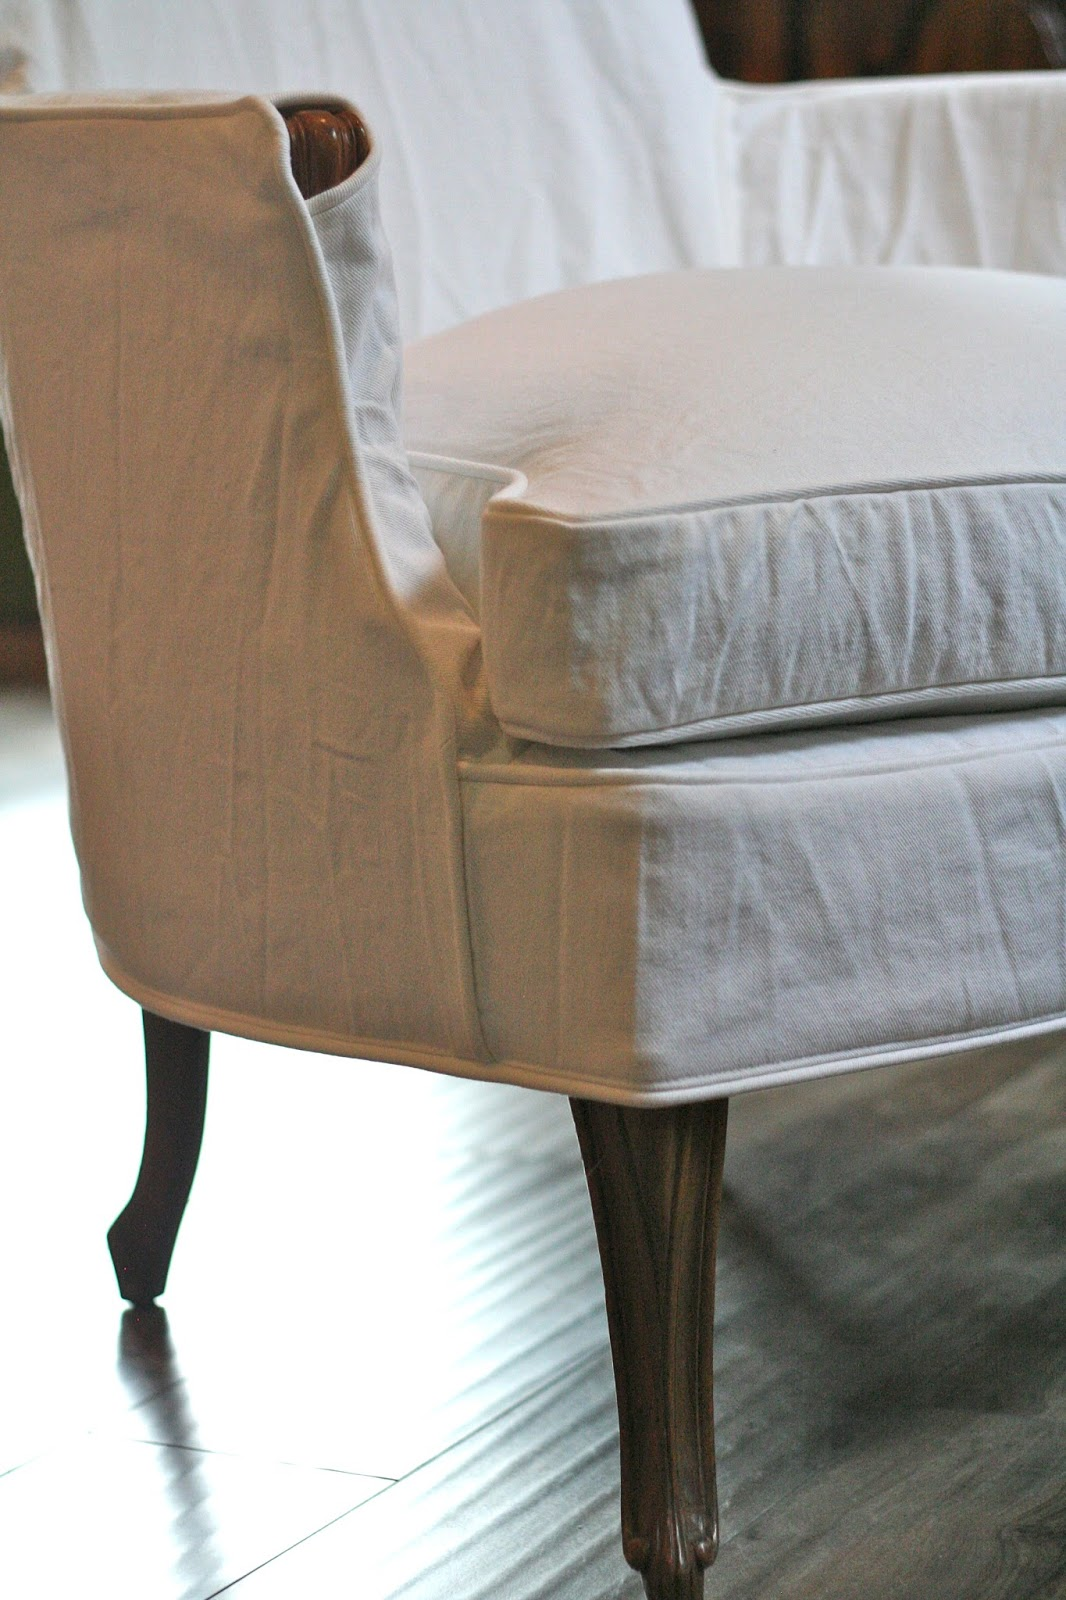 should i get chair covers for my wedding grimsby custom slipcovers by shelley bergere chairs exposed wood